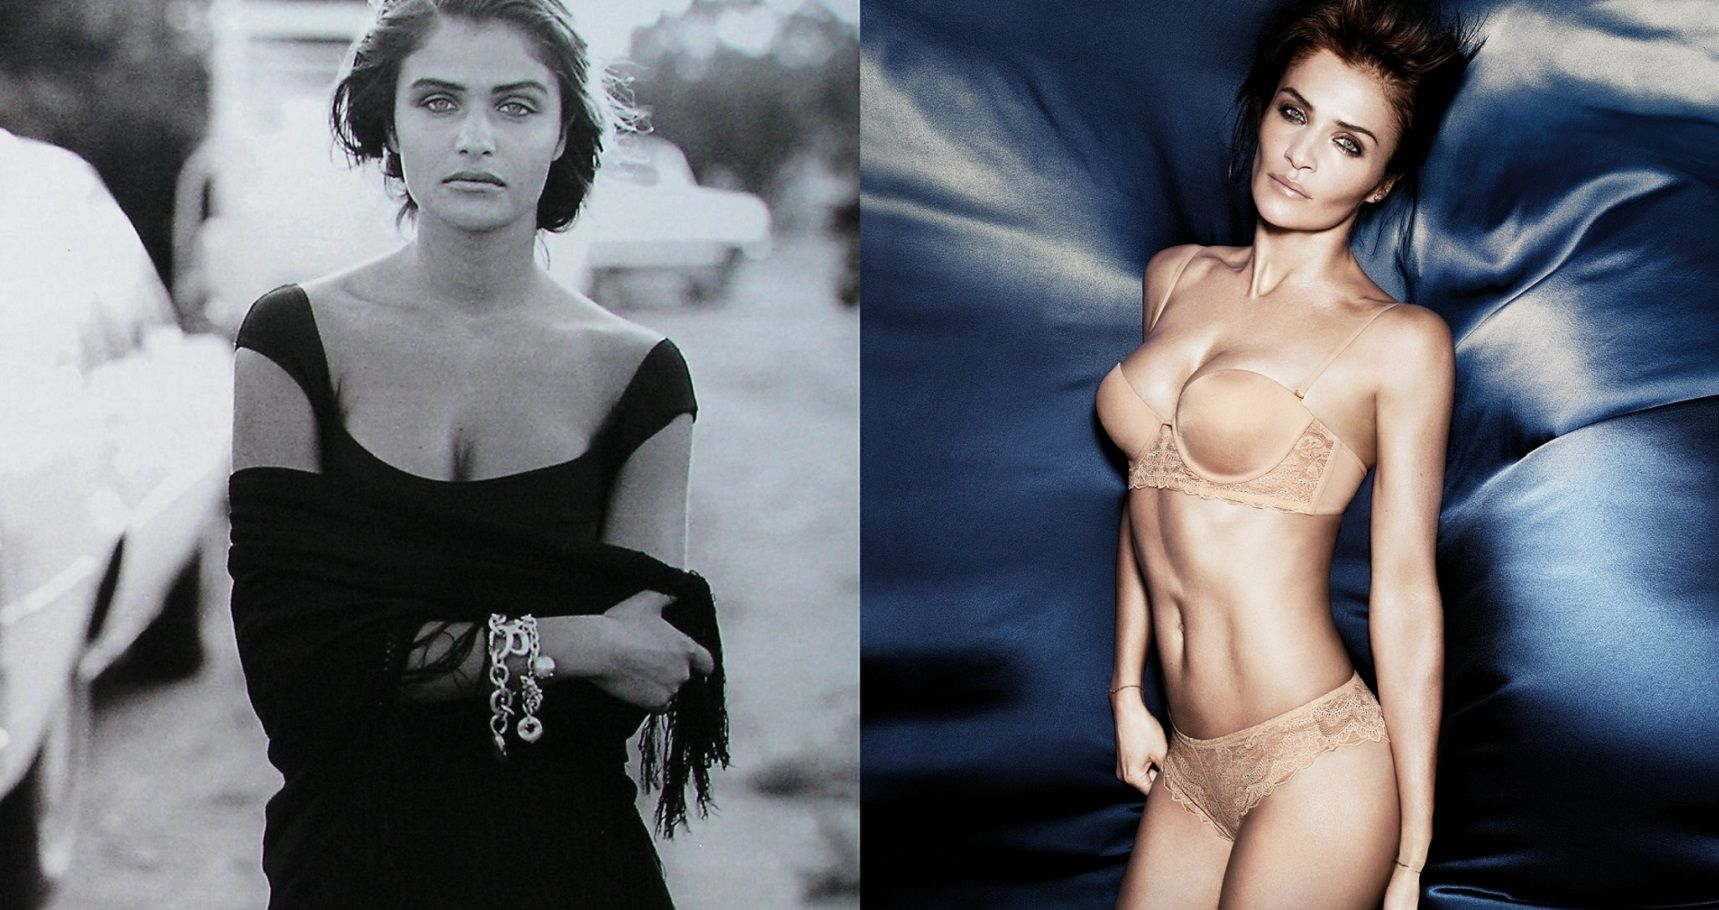 via 80s-90s-supermodels.tumblr.com / via celebritystomach.com